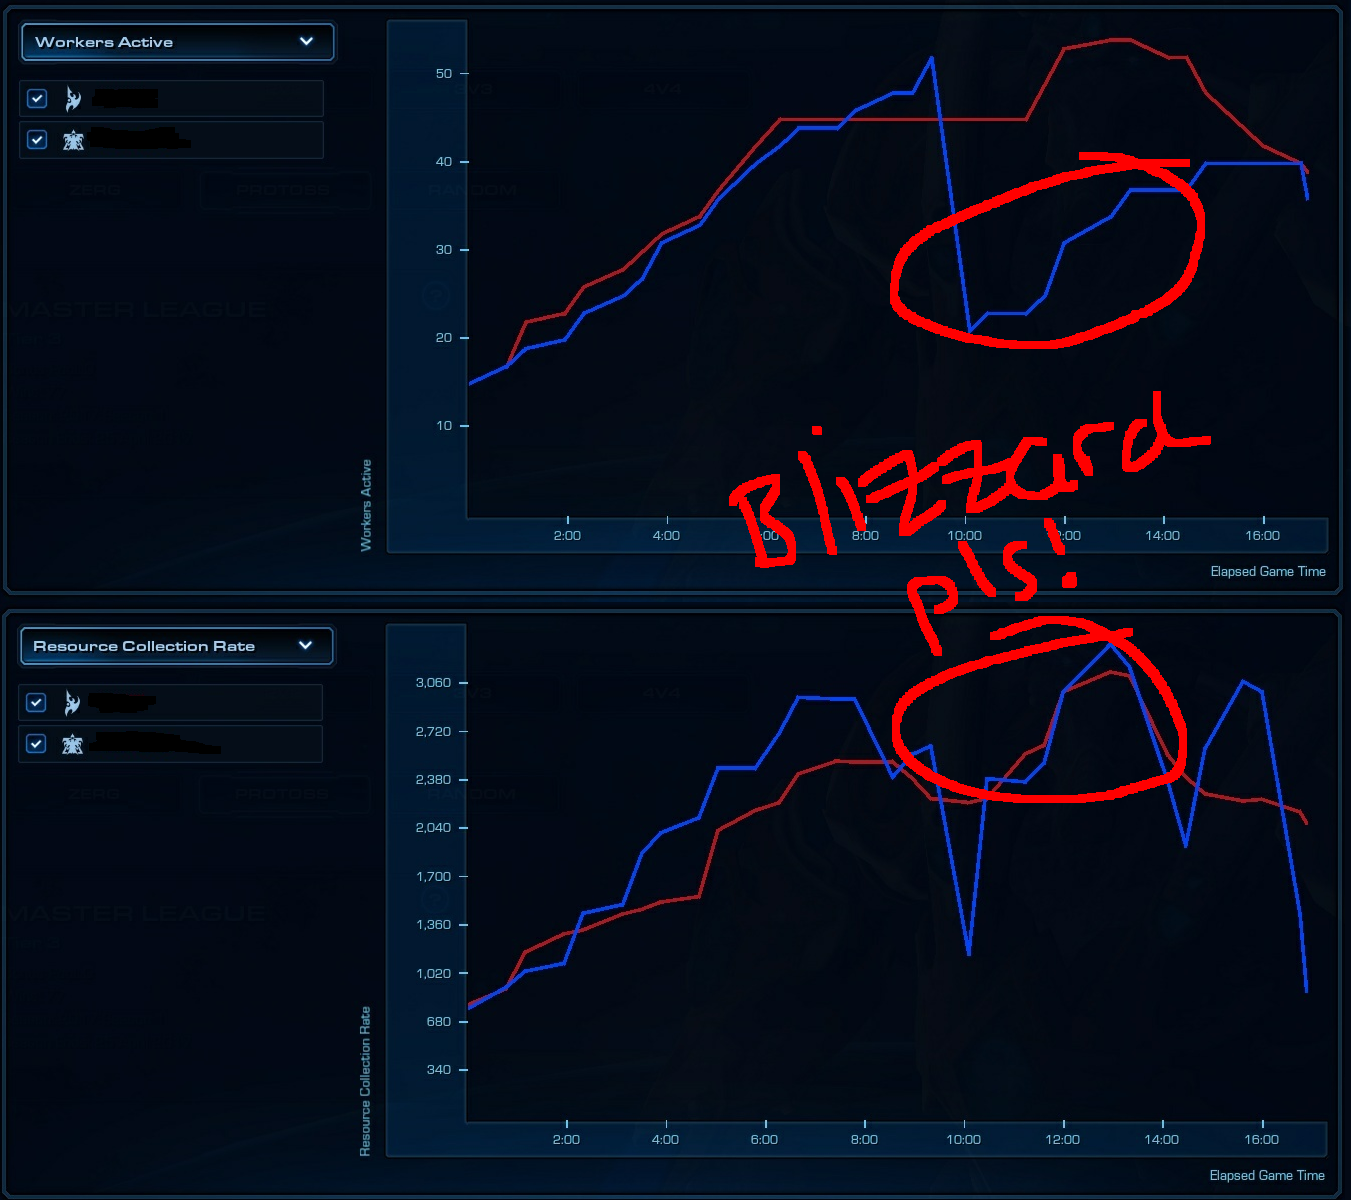 """Terrans be like """"MULEs are balanced"""". At least I won the game :) #games #Starcraft #Starcraft2 #SC2 #gamingnews #blizzard"""